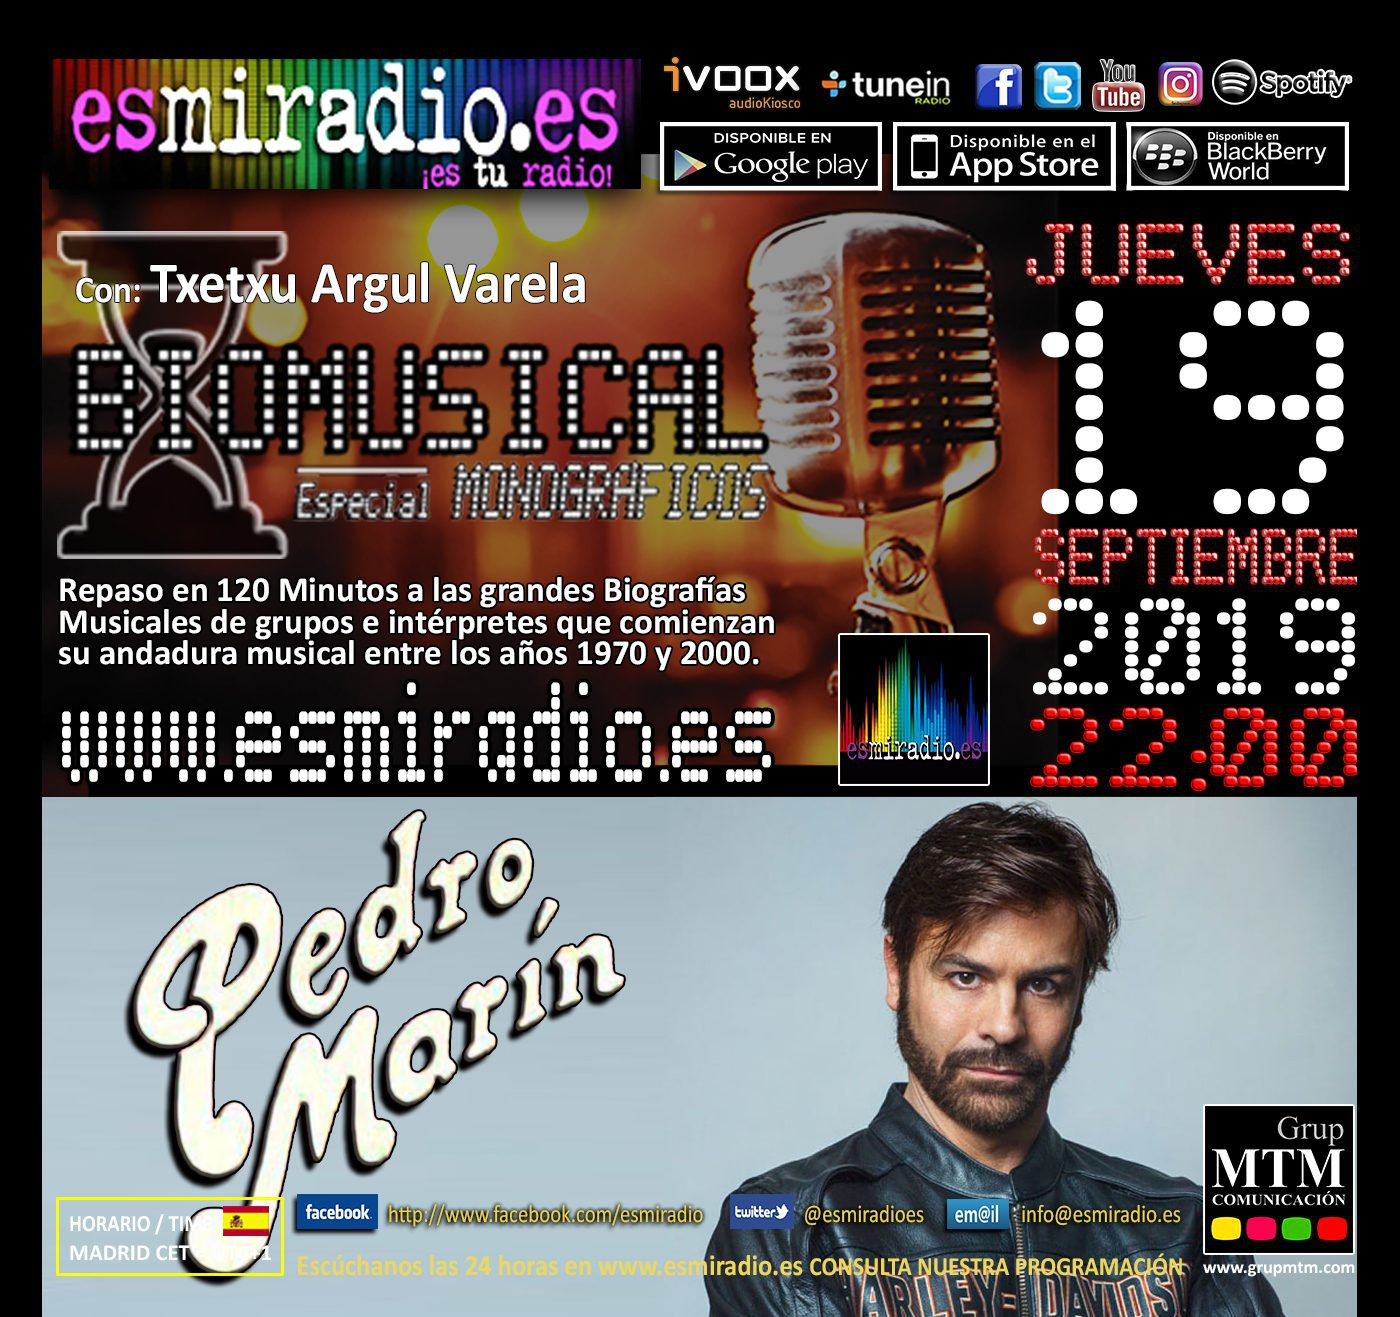 Biomusical Pedro Marín